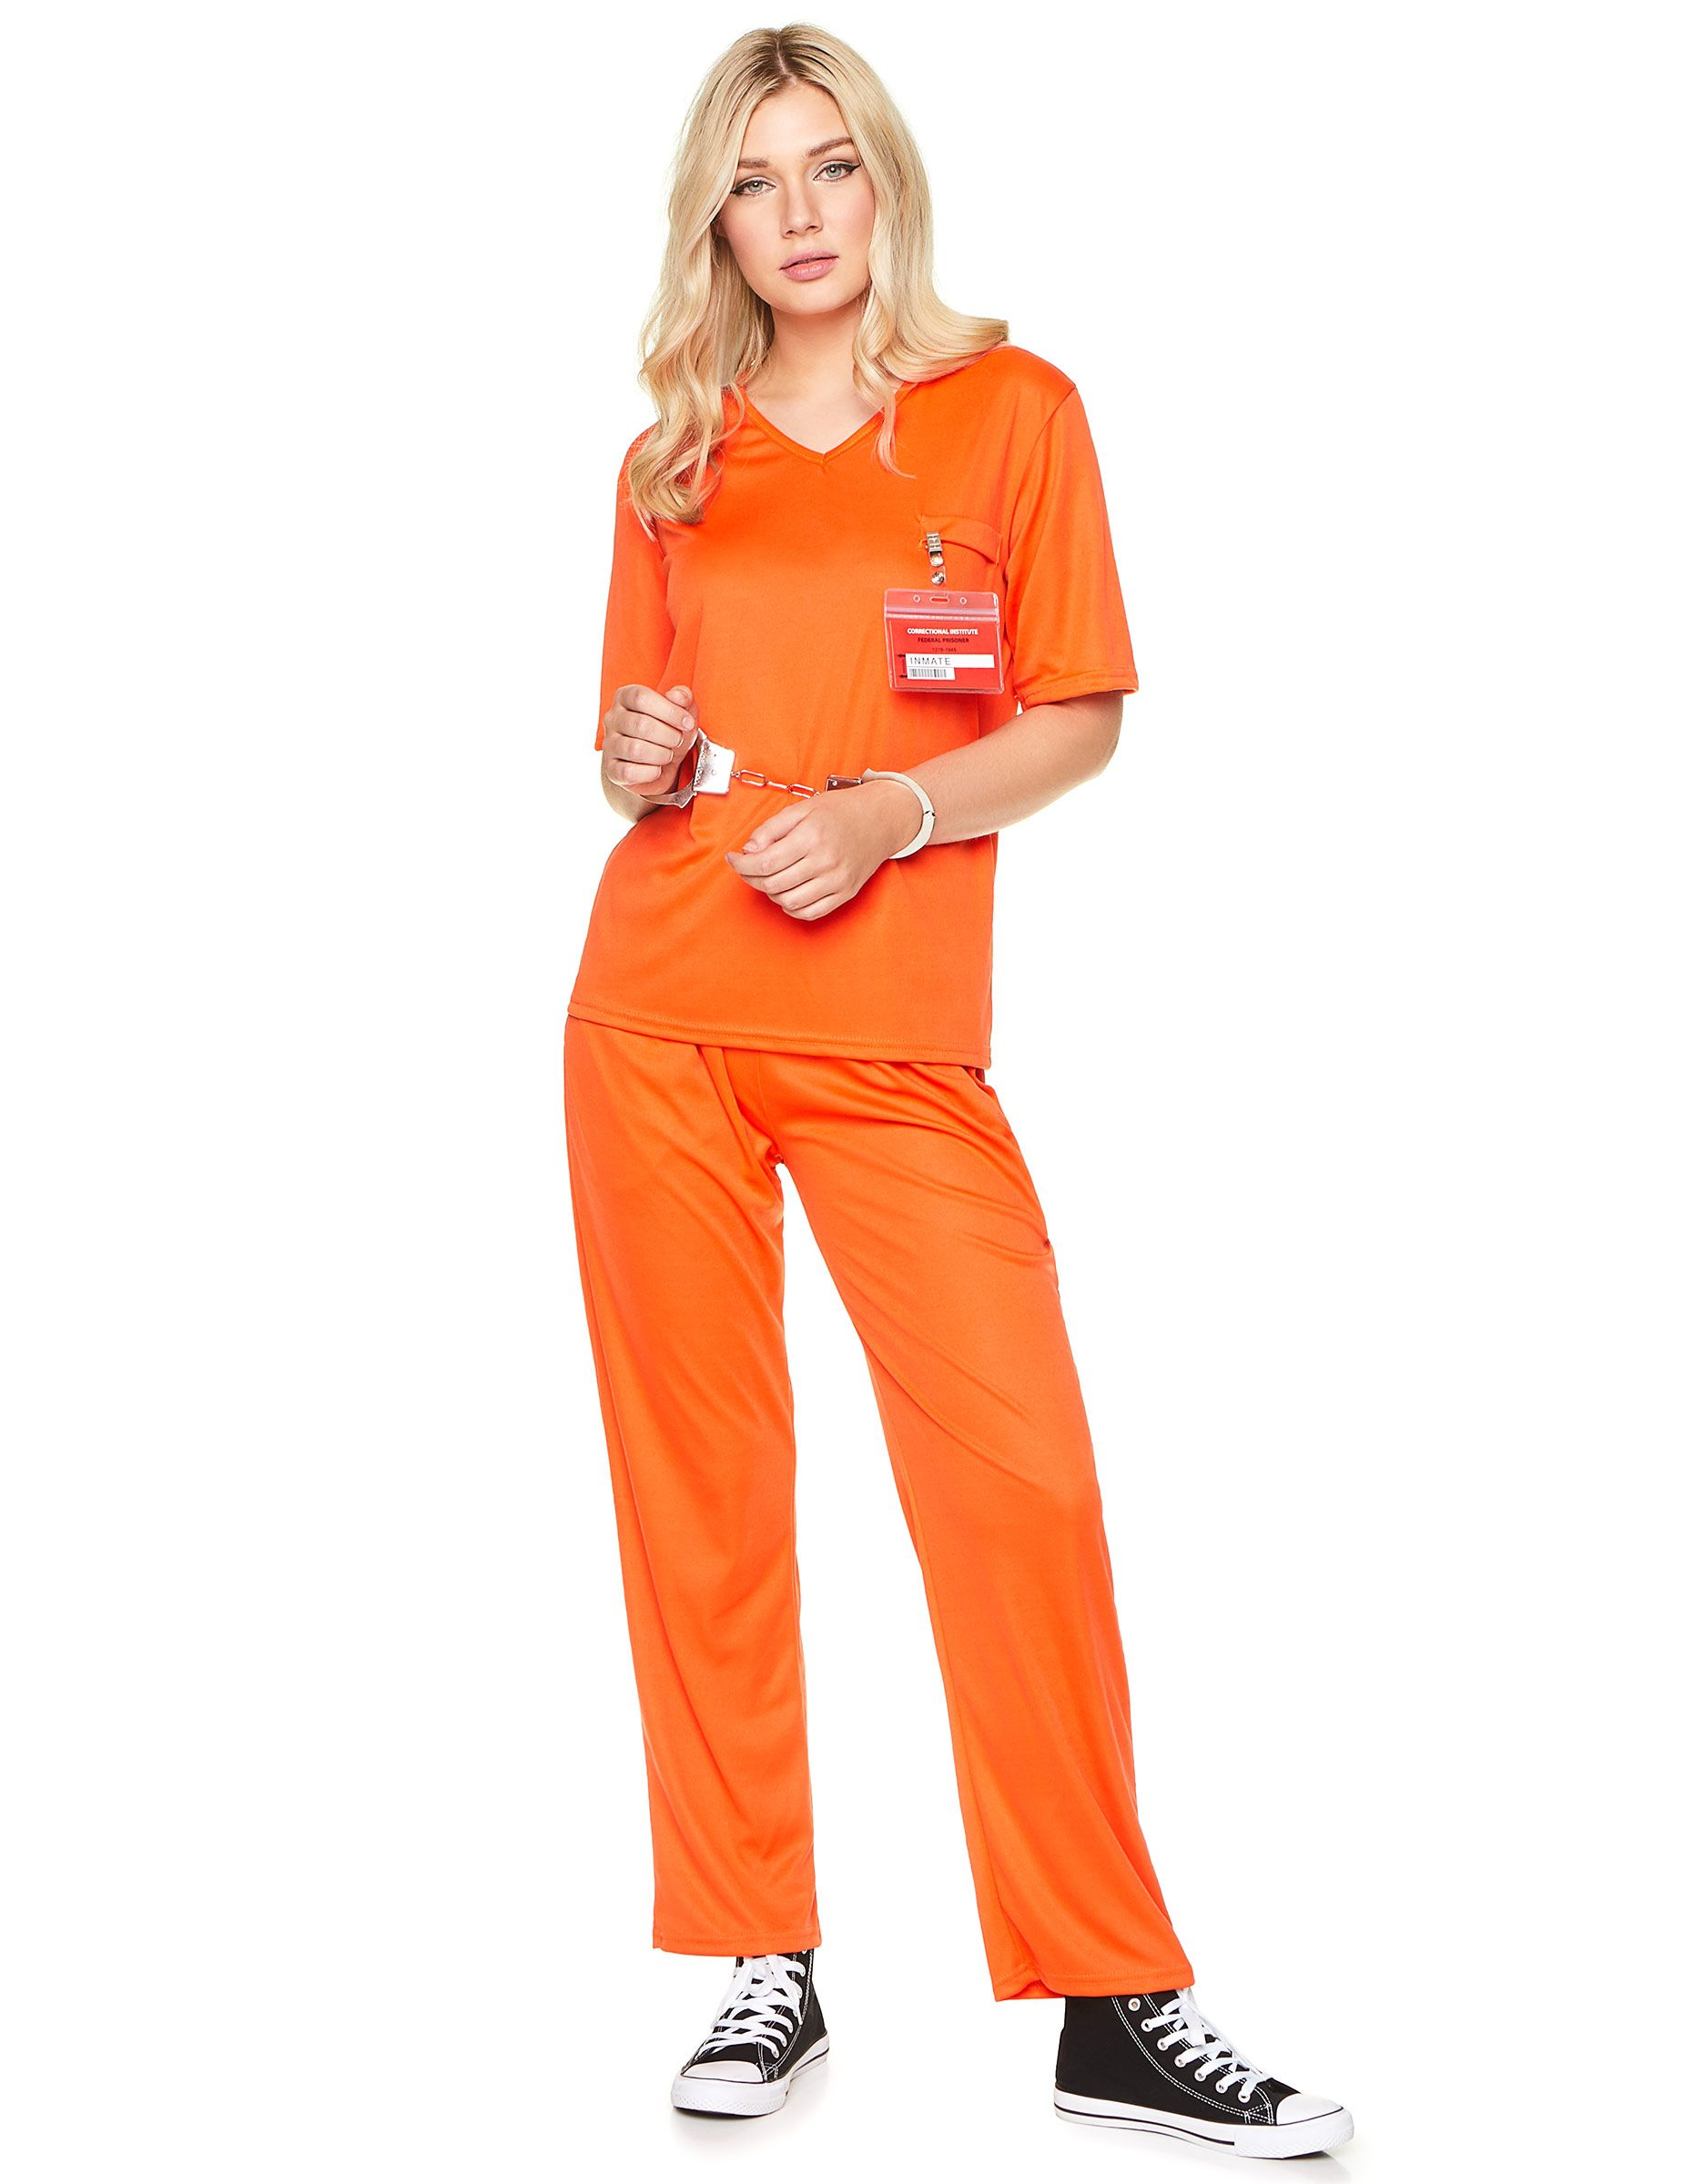 418ea70e Prisoner costume for adults: This prisoner costume for women includes a  shirt, trousers and a badge. (Shoes and handcuffs not included.